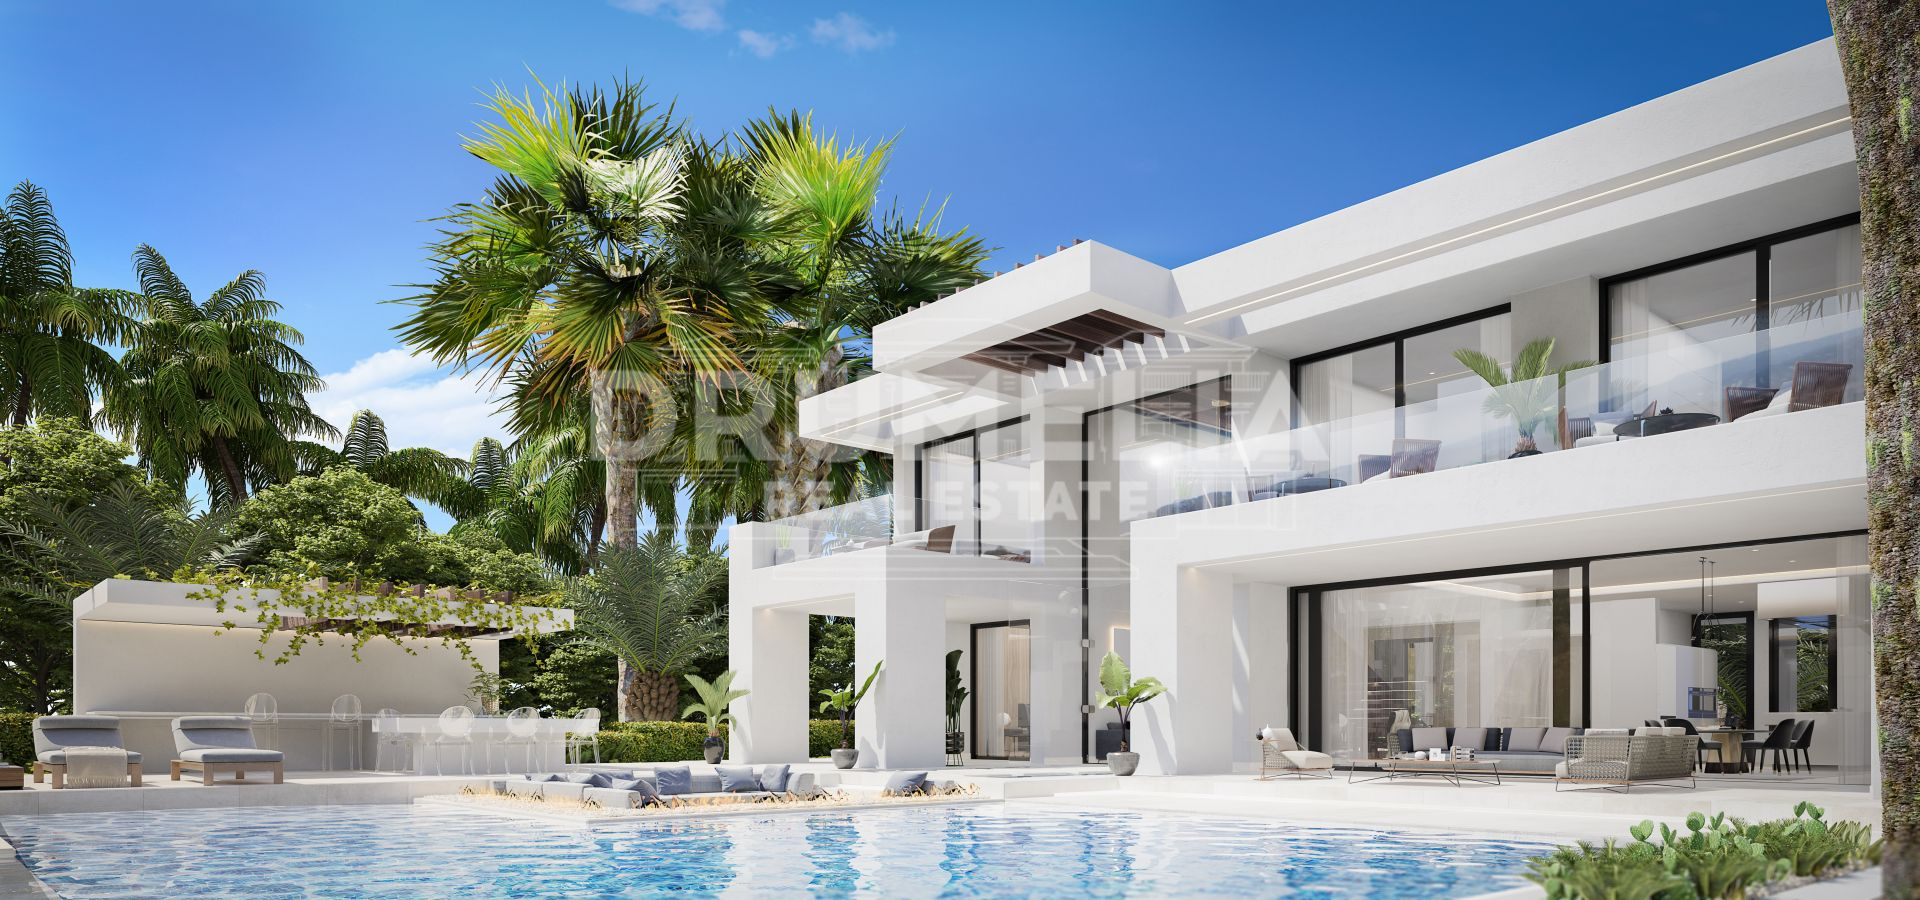 Estepona, New Magnificent Frontline Golf Contemporary Style Luxury Villa with Stunning Panoramic Views, La Resina Golf & Country Club, Estepona